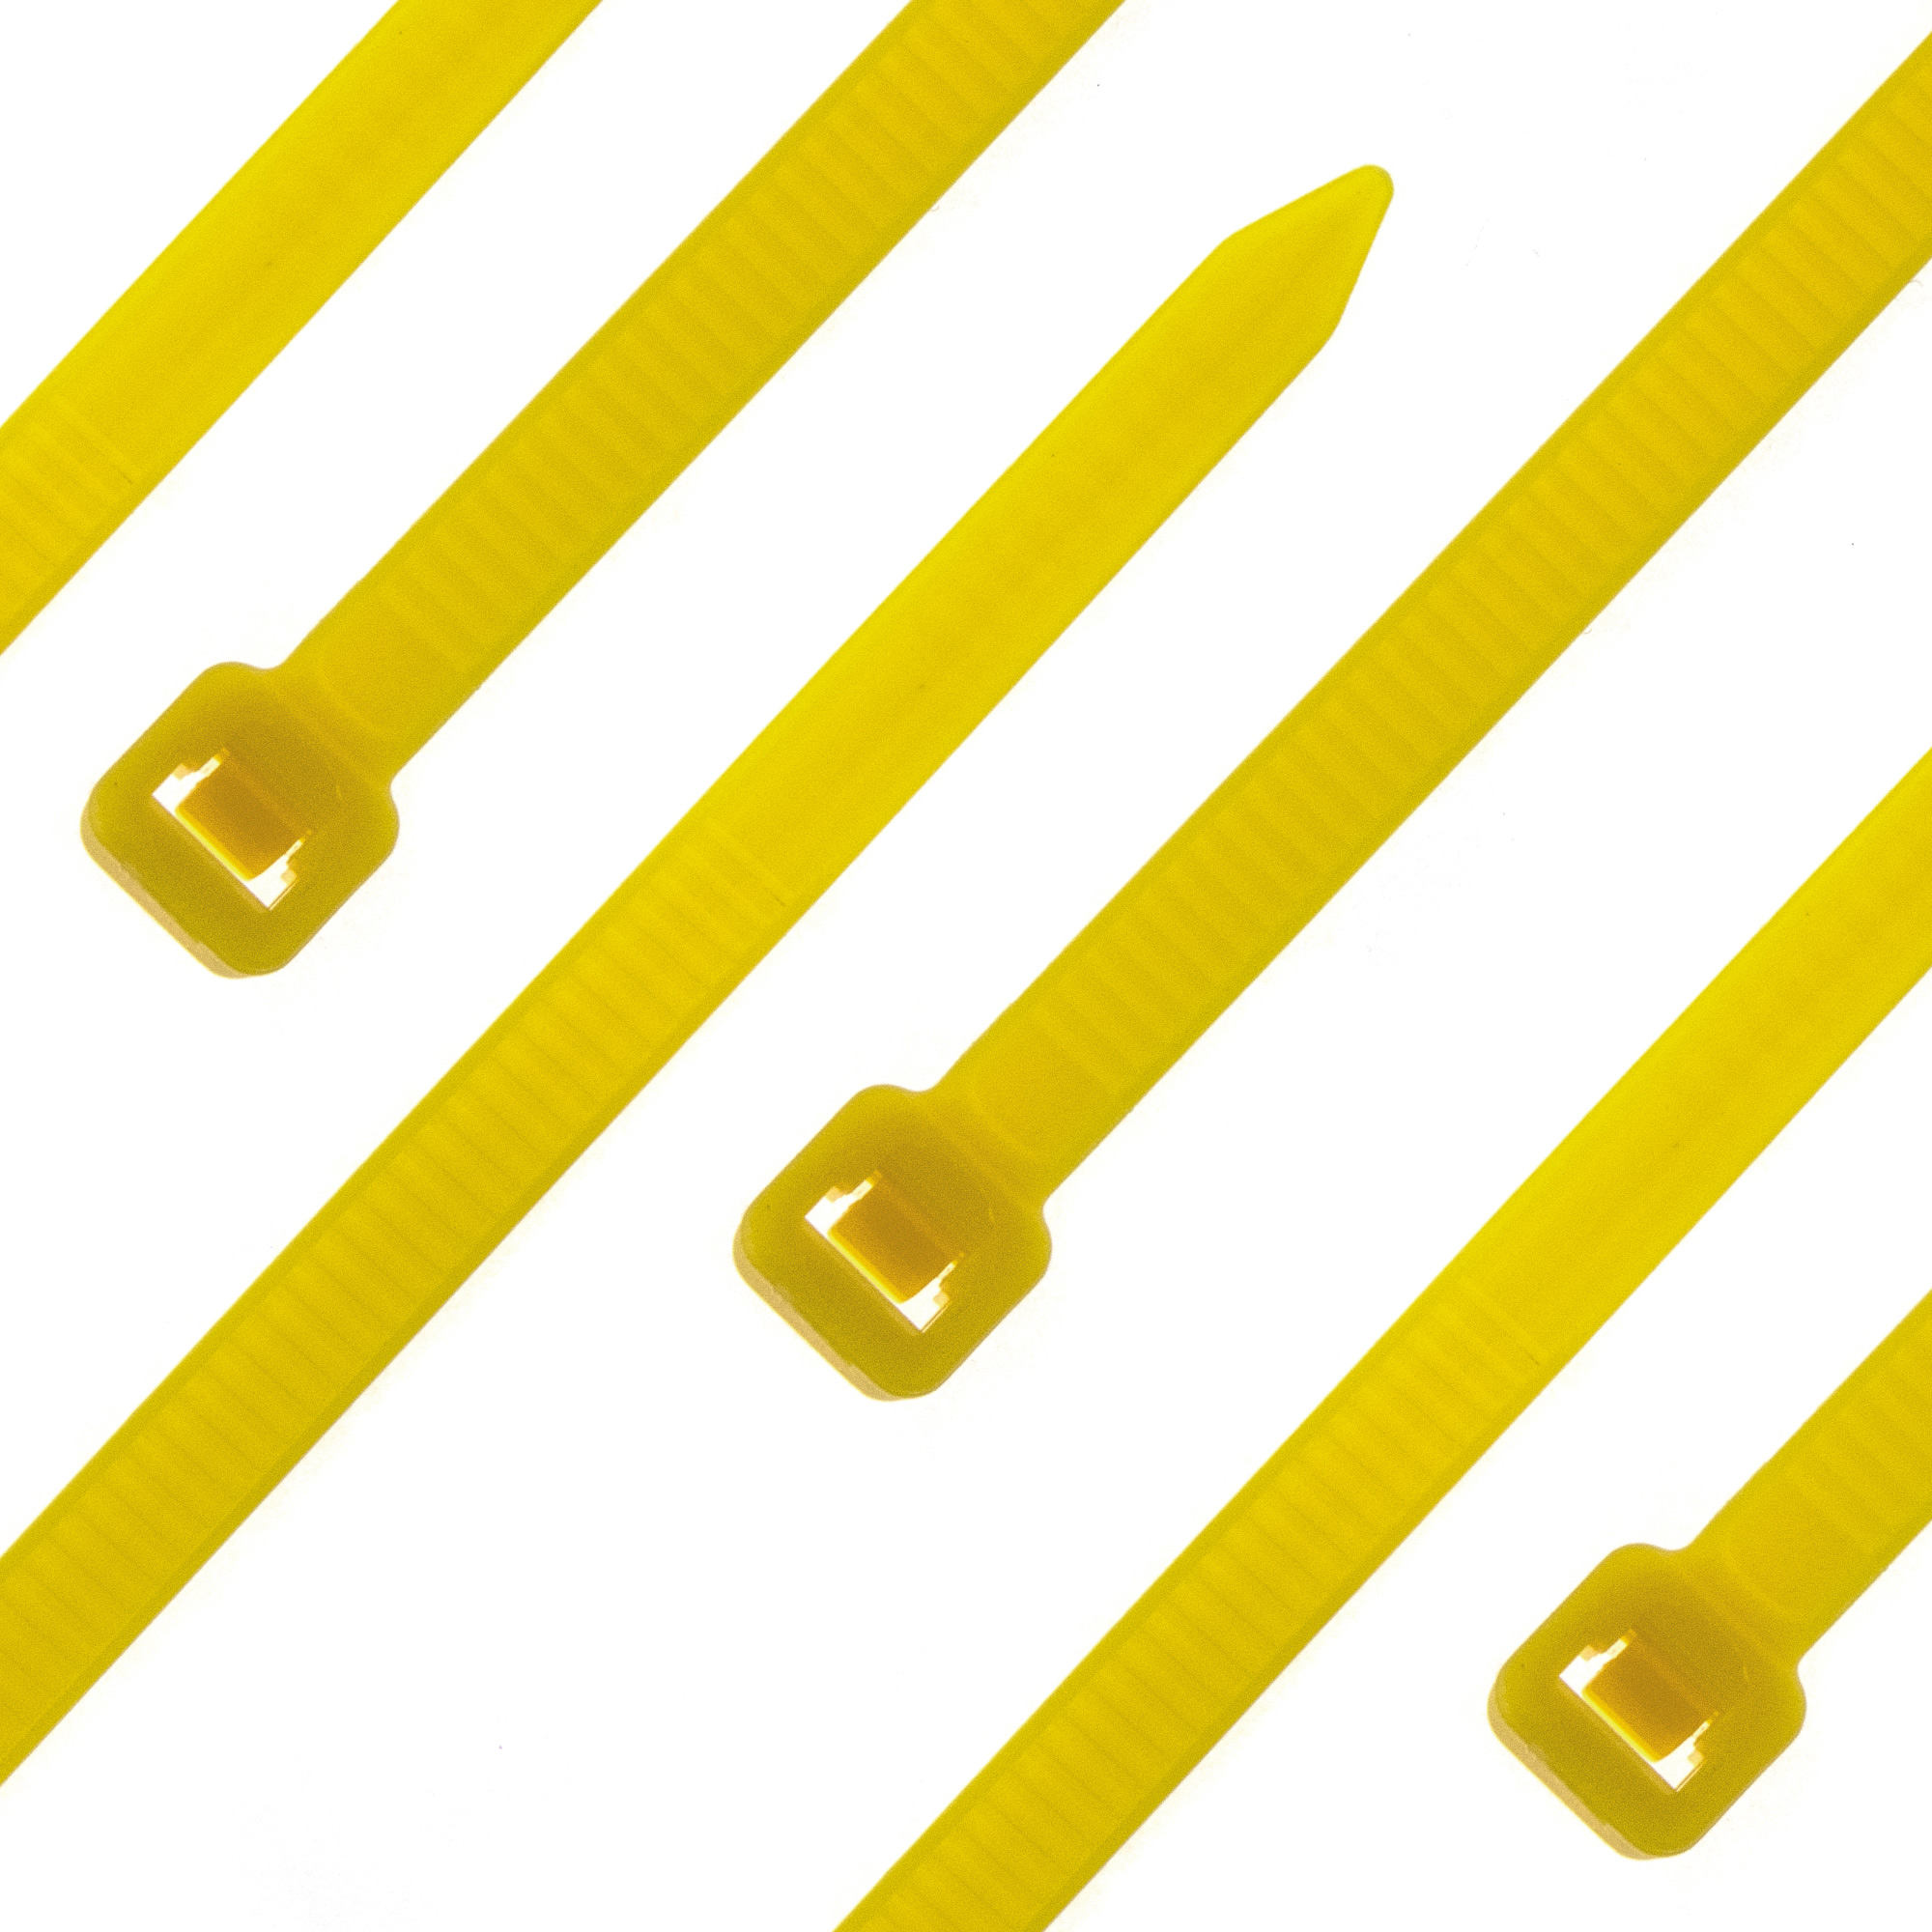 Cable tie self-locking 380 x 4,8mm, yellow, 100PCS